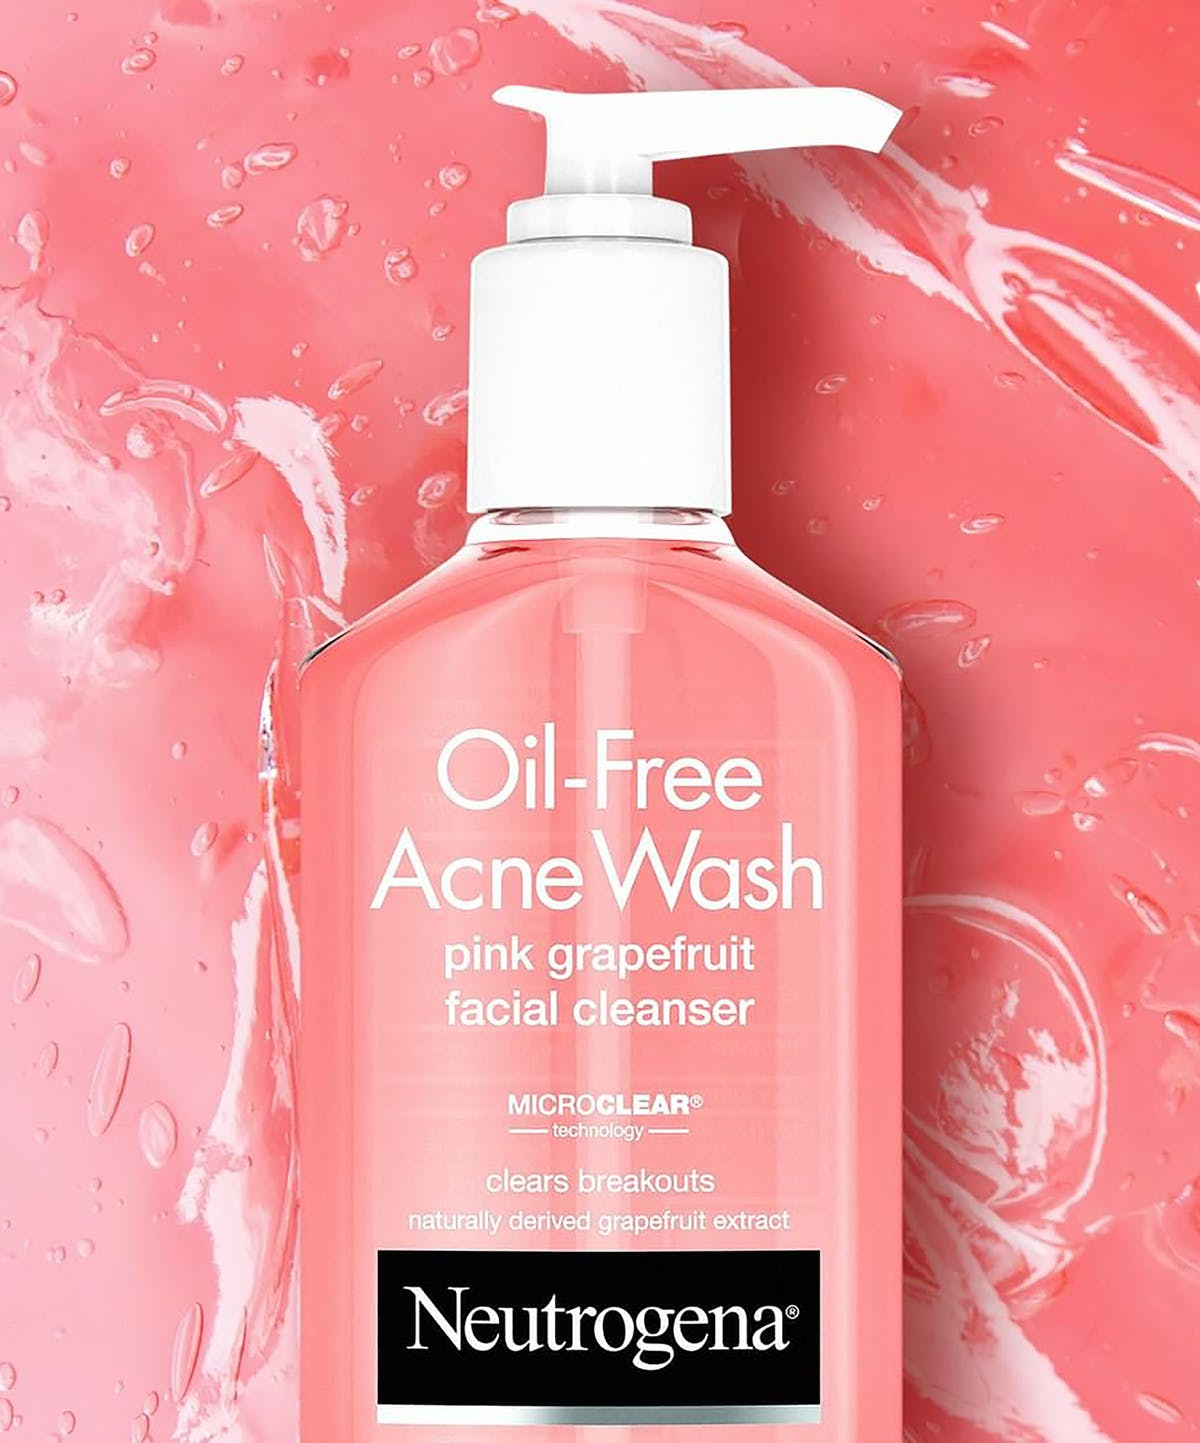 ... Oil-Free Acne Wash Pink Grapefruit Facial Cleanser